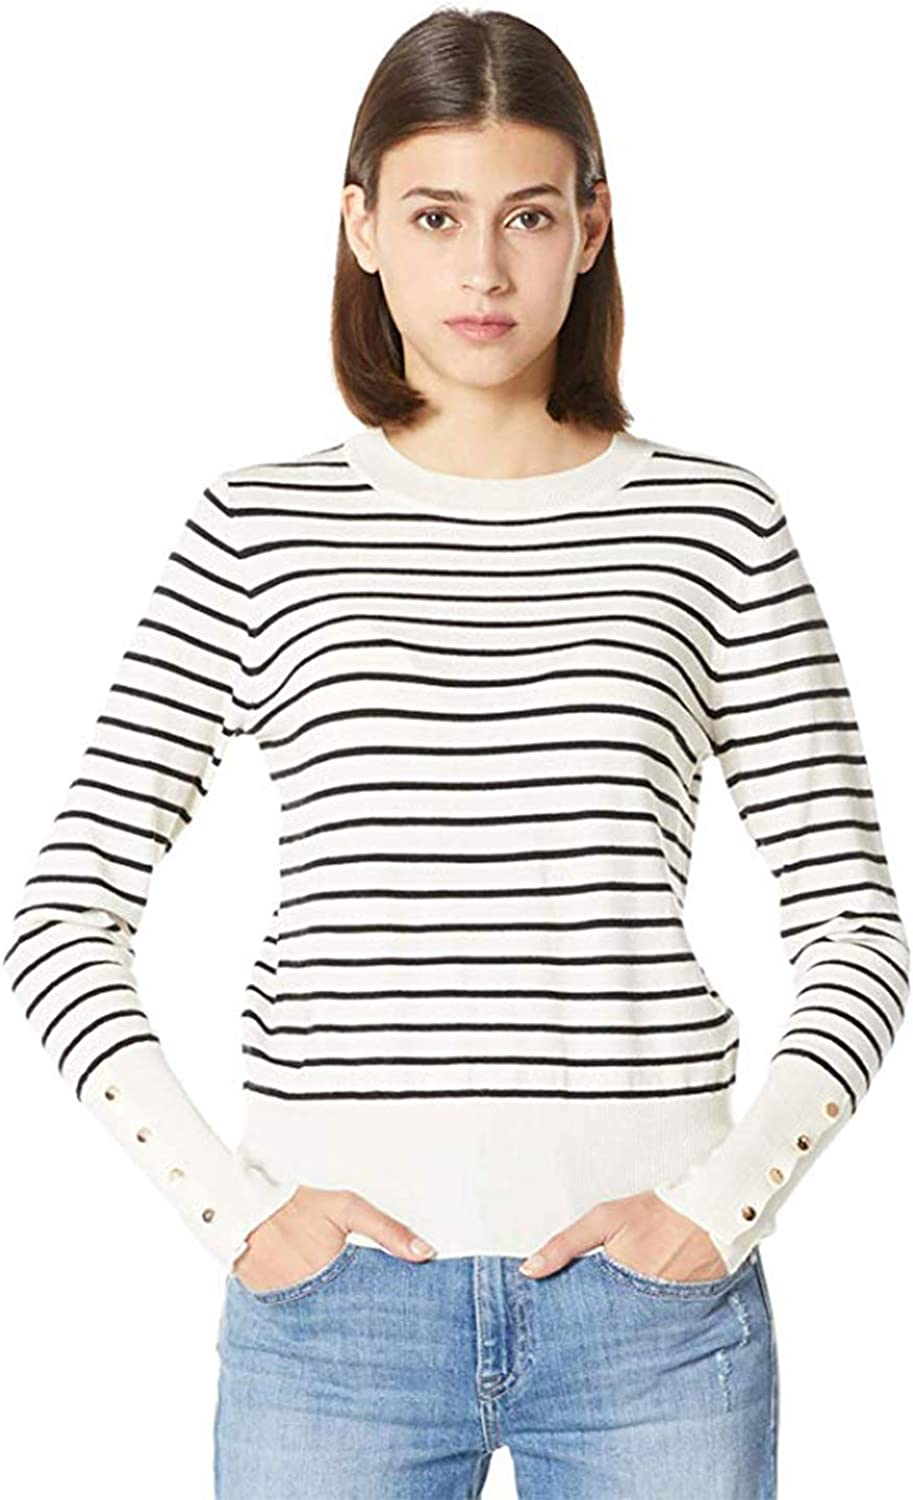 PLUMBERRY Women's Casual Long Sleeve Striped Tops Lightweight Pullover Boxy Knit Crewneck Solid Color Sweater (Small, White Bottom Black Strip)